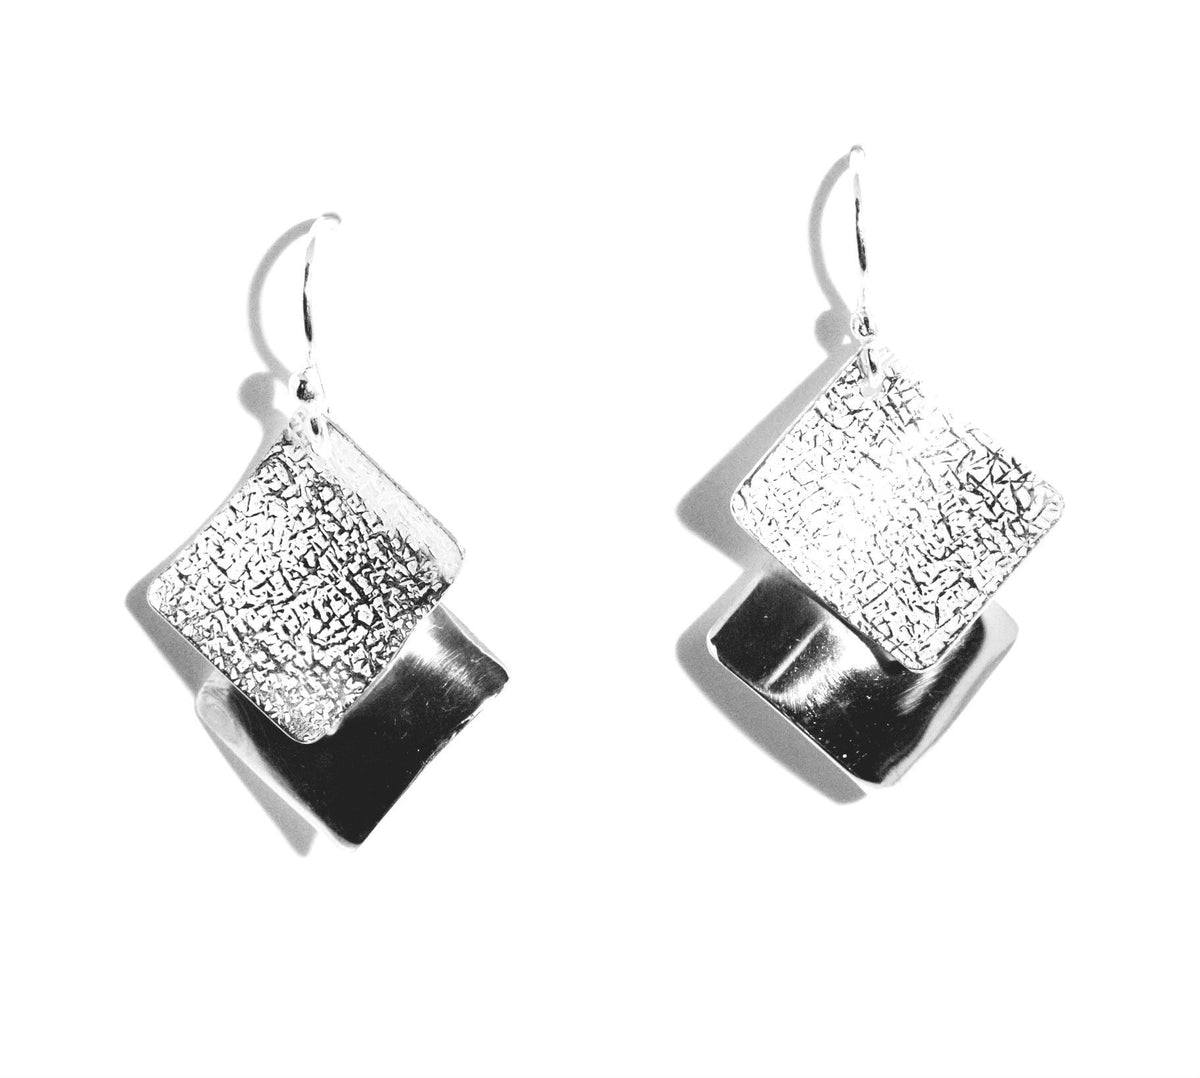 Squares Textured & High Polish Sterling Silver Earrings - Qinti - The Peruvian Shop